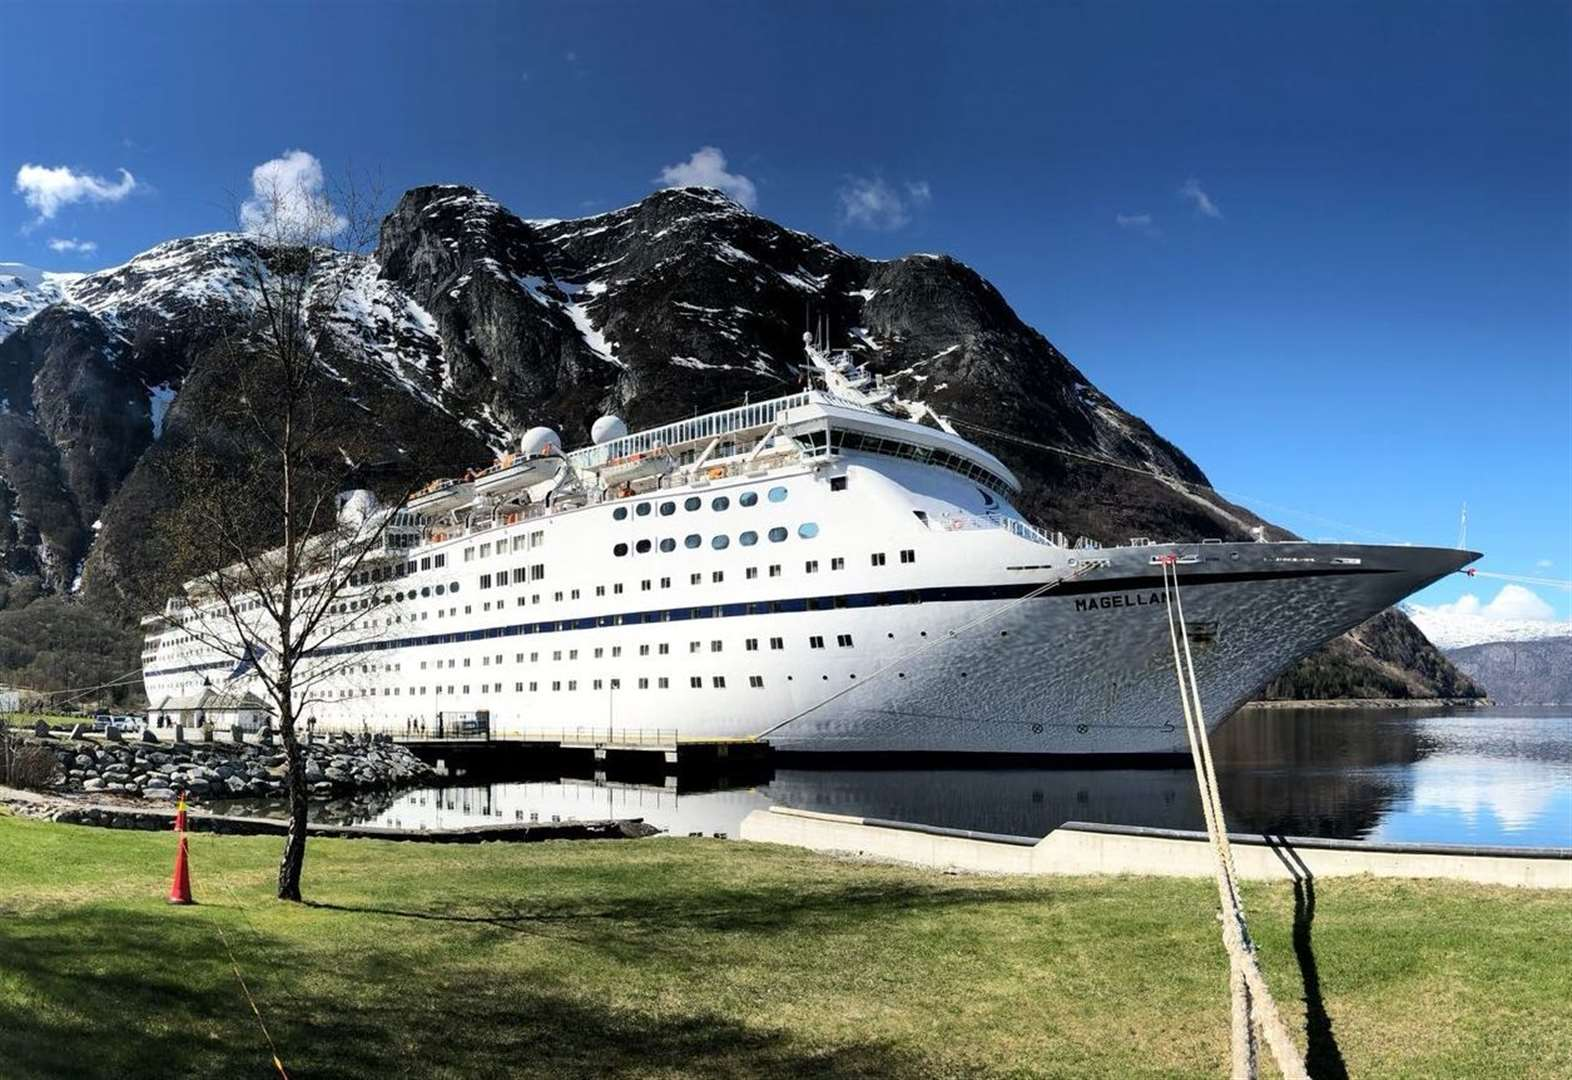 Cruise control: The unspoilt Norwegian Fjords